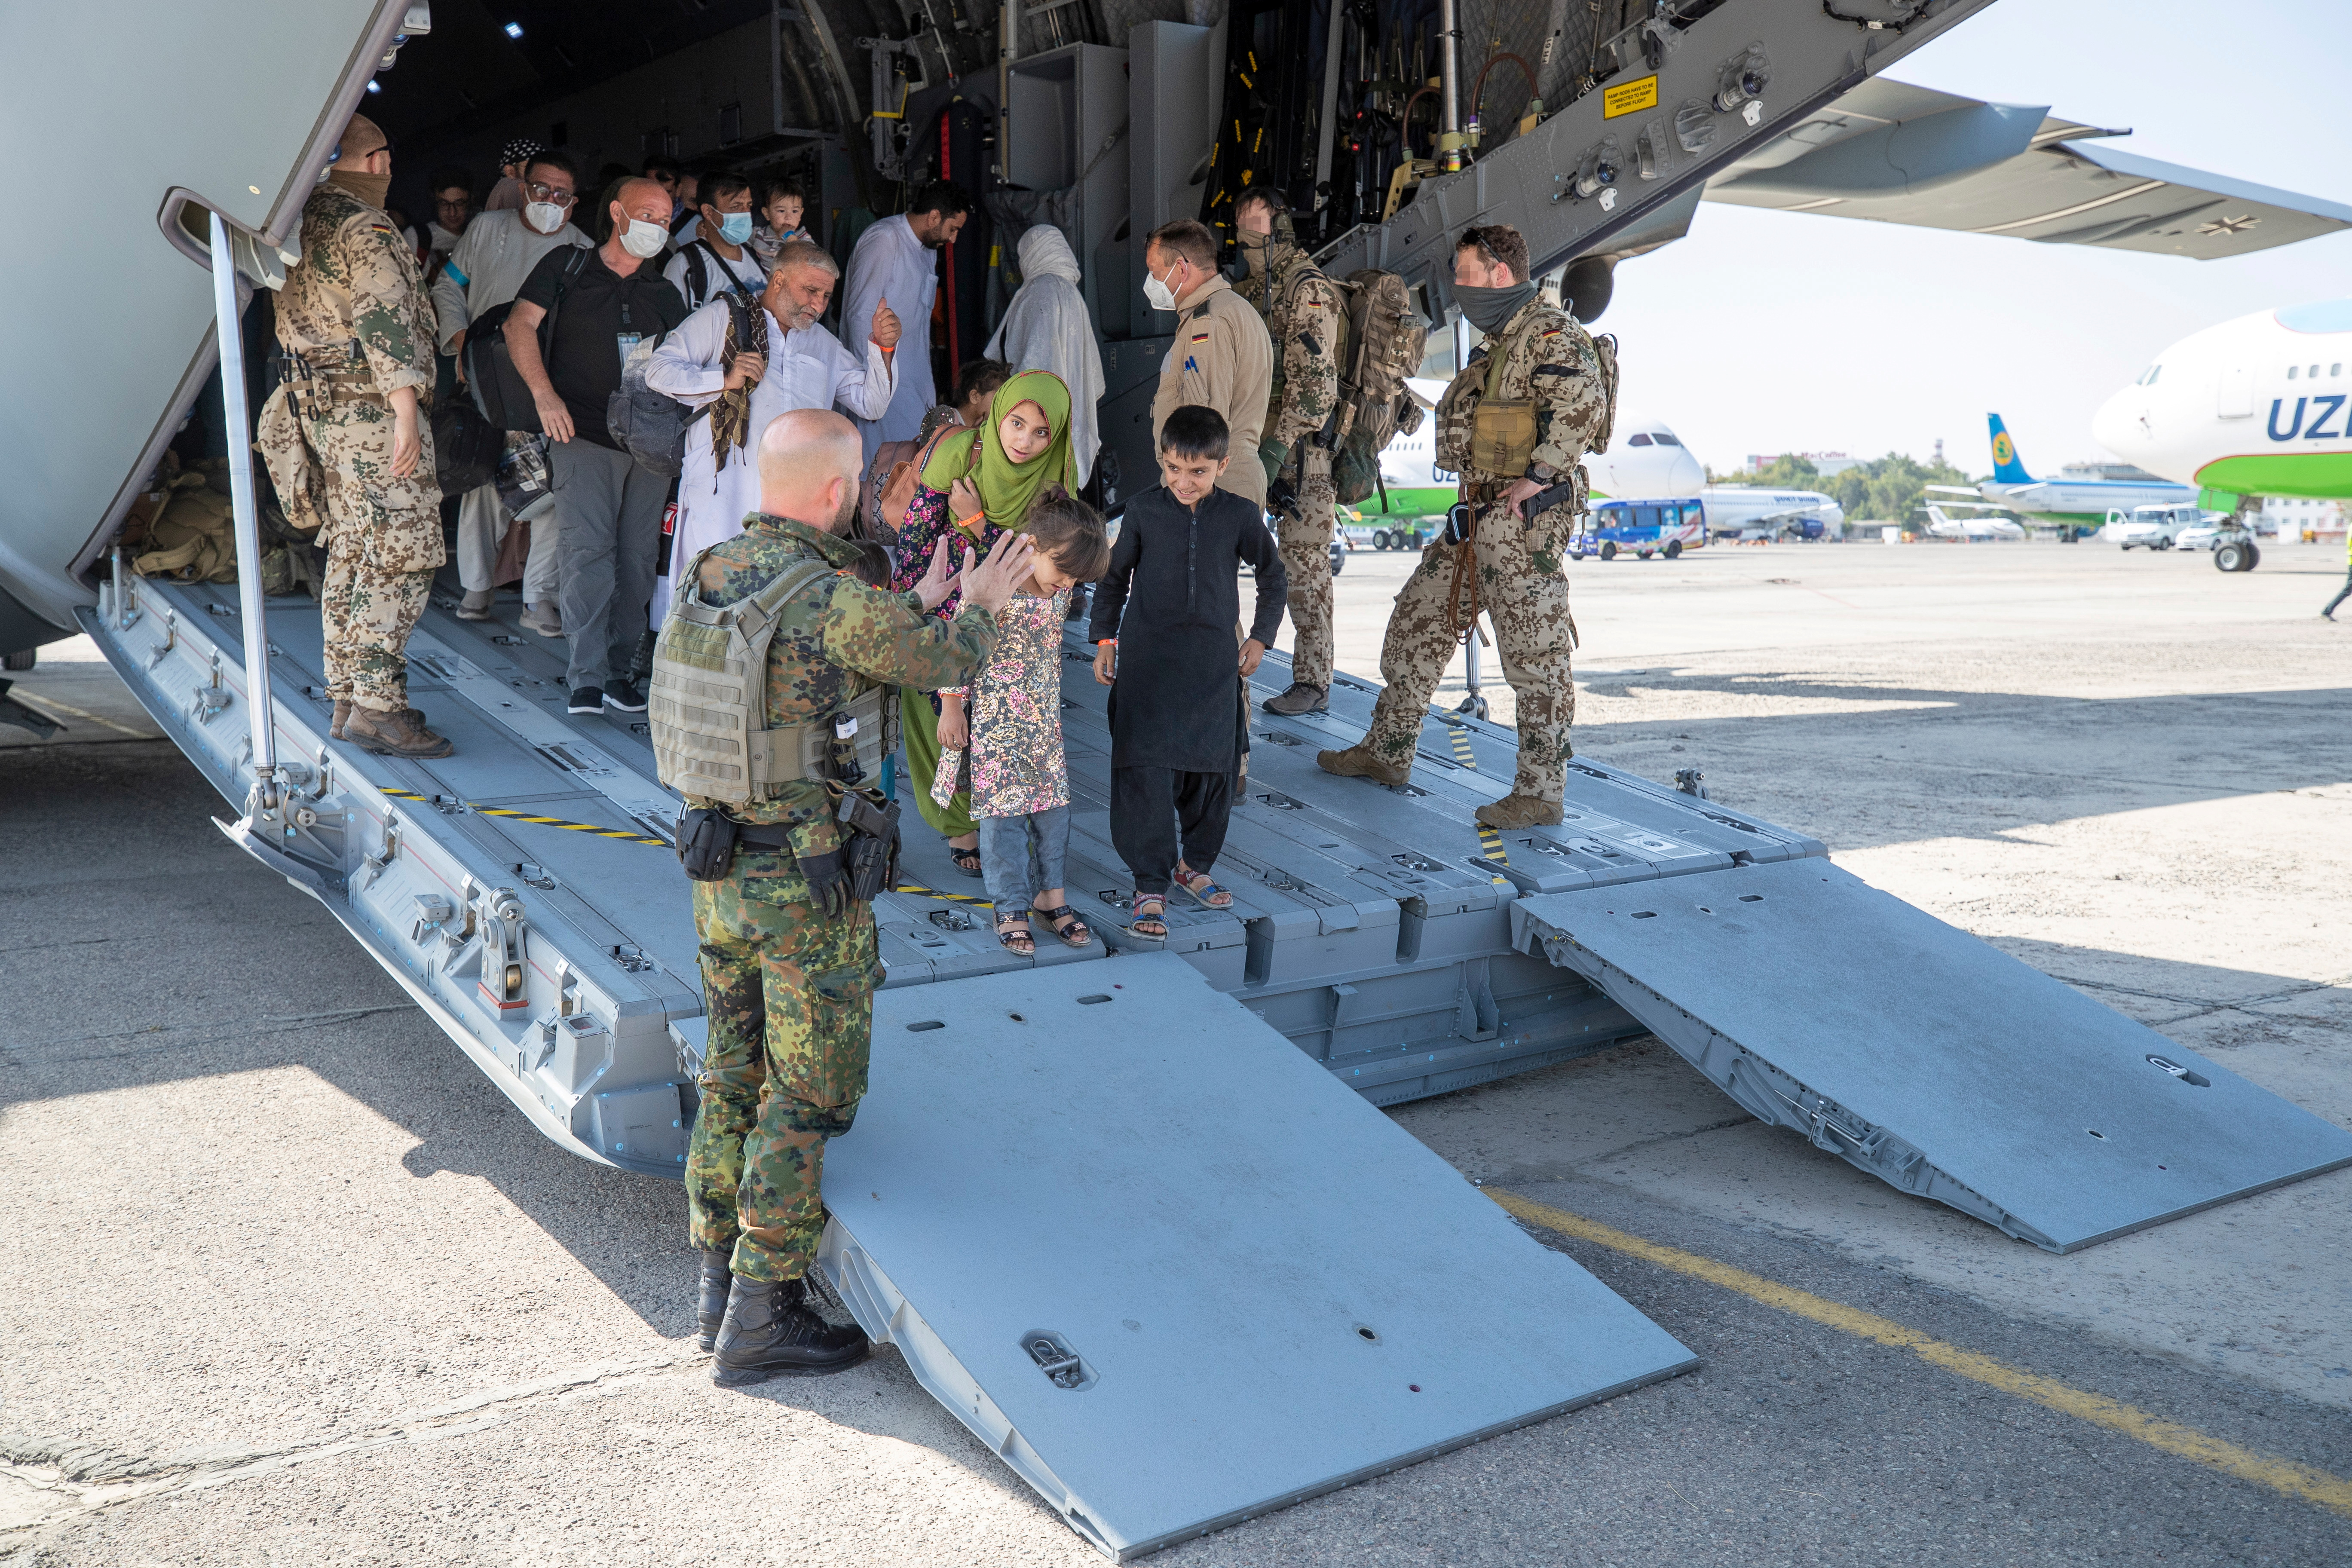 A handout photo obtained from the Bundeswehr Twitter account @Bw_Einsatz on August 18, 2021 shows staff talking to evacuees from Afghanistan as they arrive in an Airbus A400 transport aircraft of the German Air Force Luftwaffe in Tashkent, Uzbekistan. Marc Tessensohn/Twitter @Bw_Einsatz/Handout via REUTERS    ATTENTION EDITORS - THIS IMAGE HAS BEEN SUPPLIED BY A THIRD PARTY.   NO RESALES. NO ARCHIVES. PARTS OF THE IMAGE HAVE BEEN PIXELATED AT SOURCE.